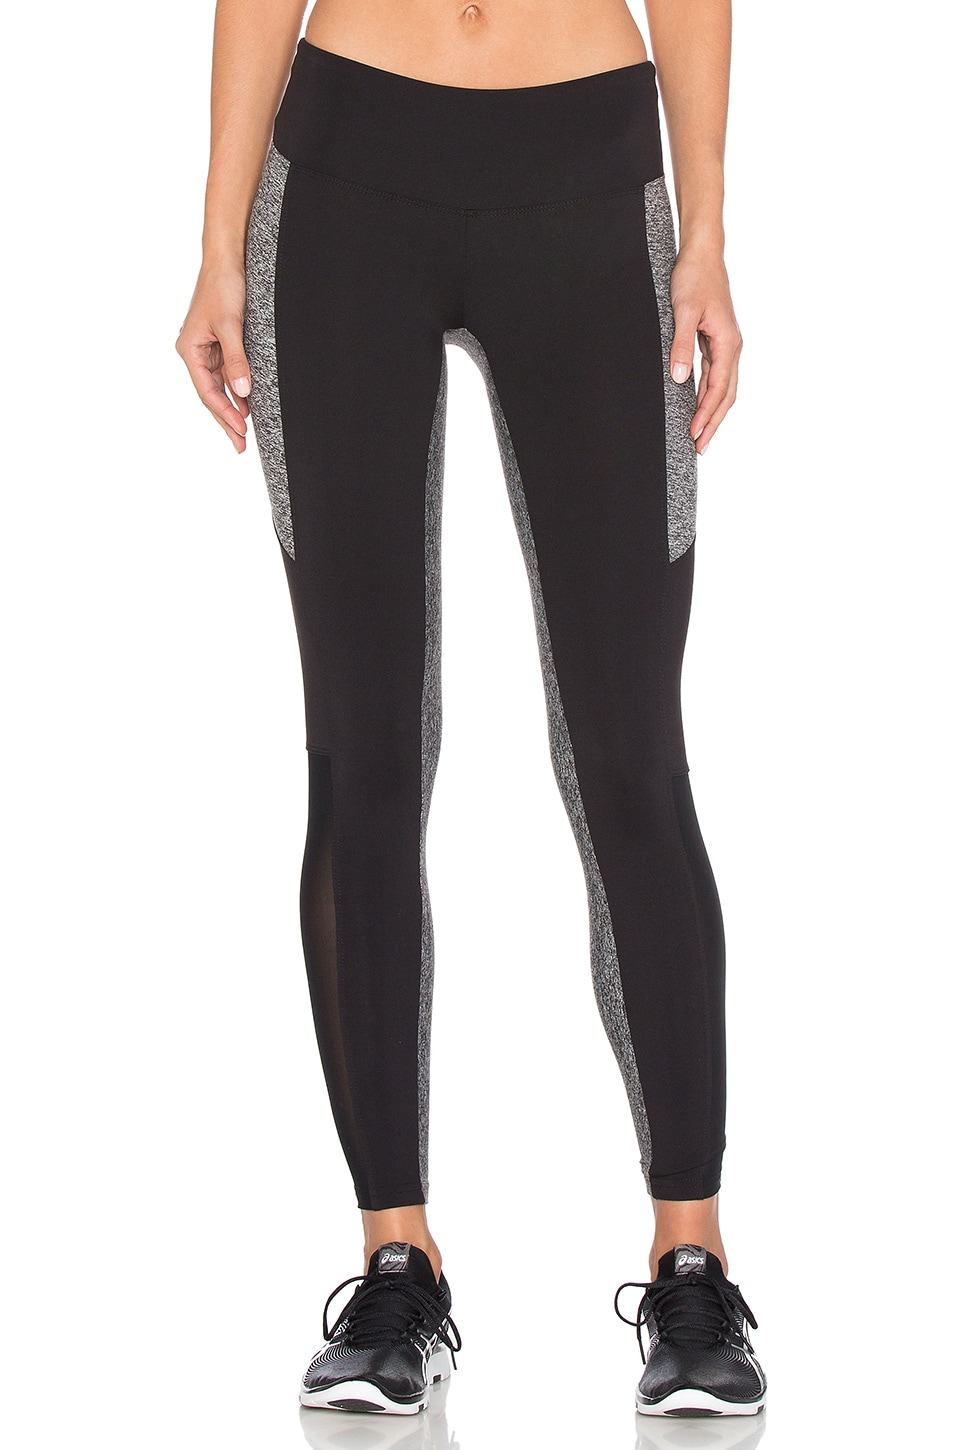 The Strut Legging by Strut-This